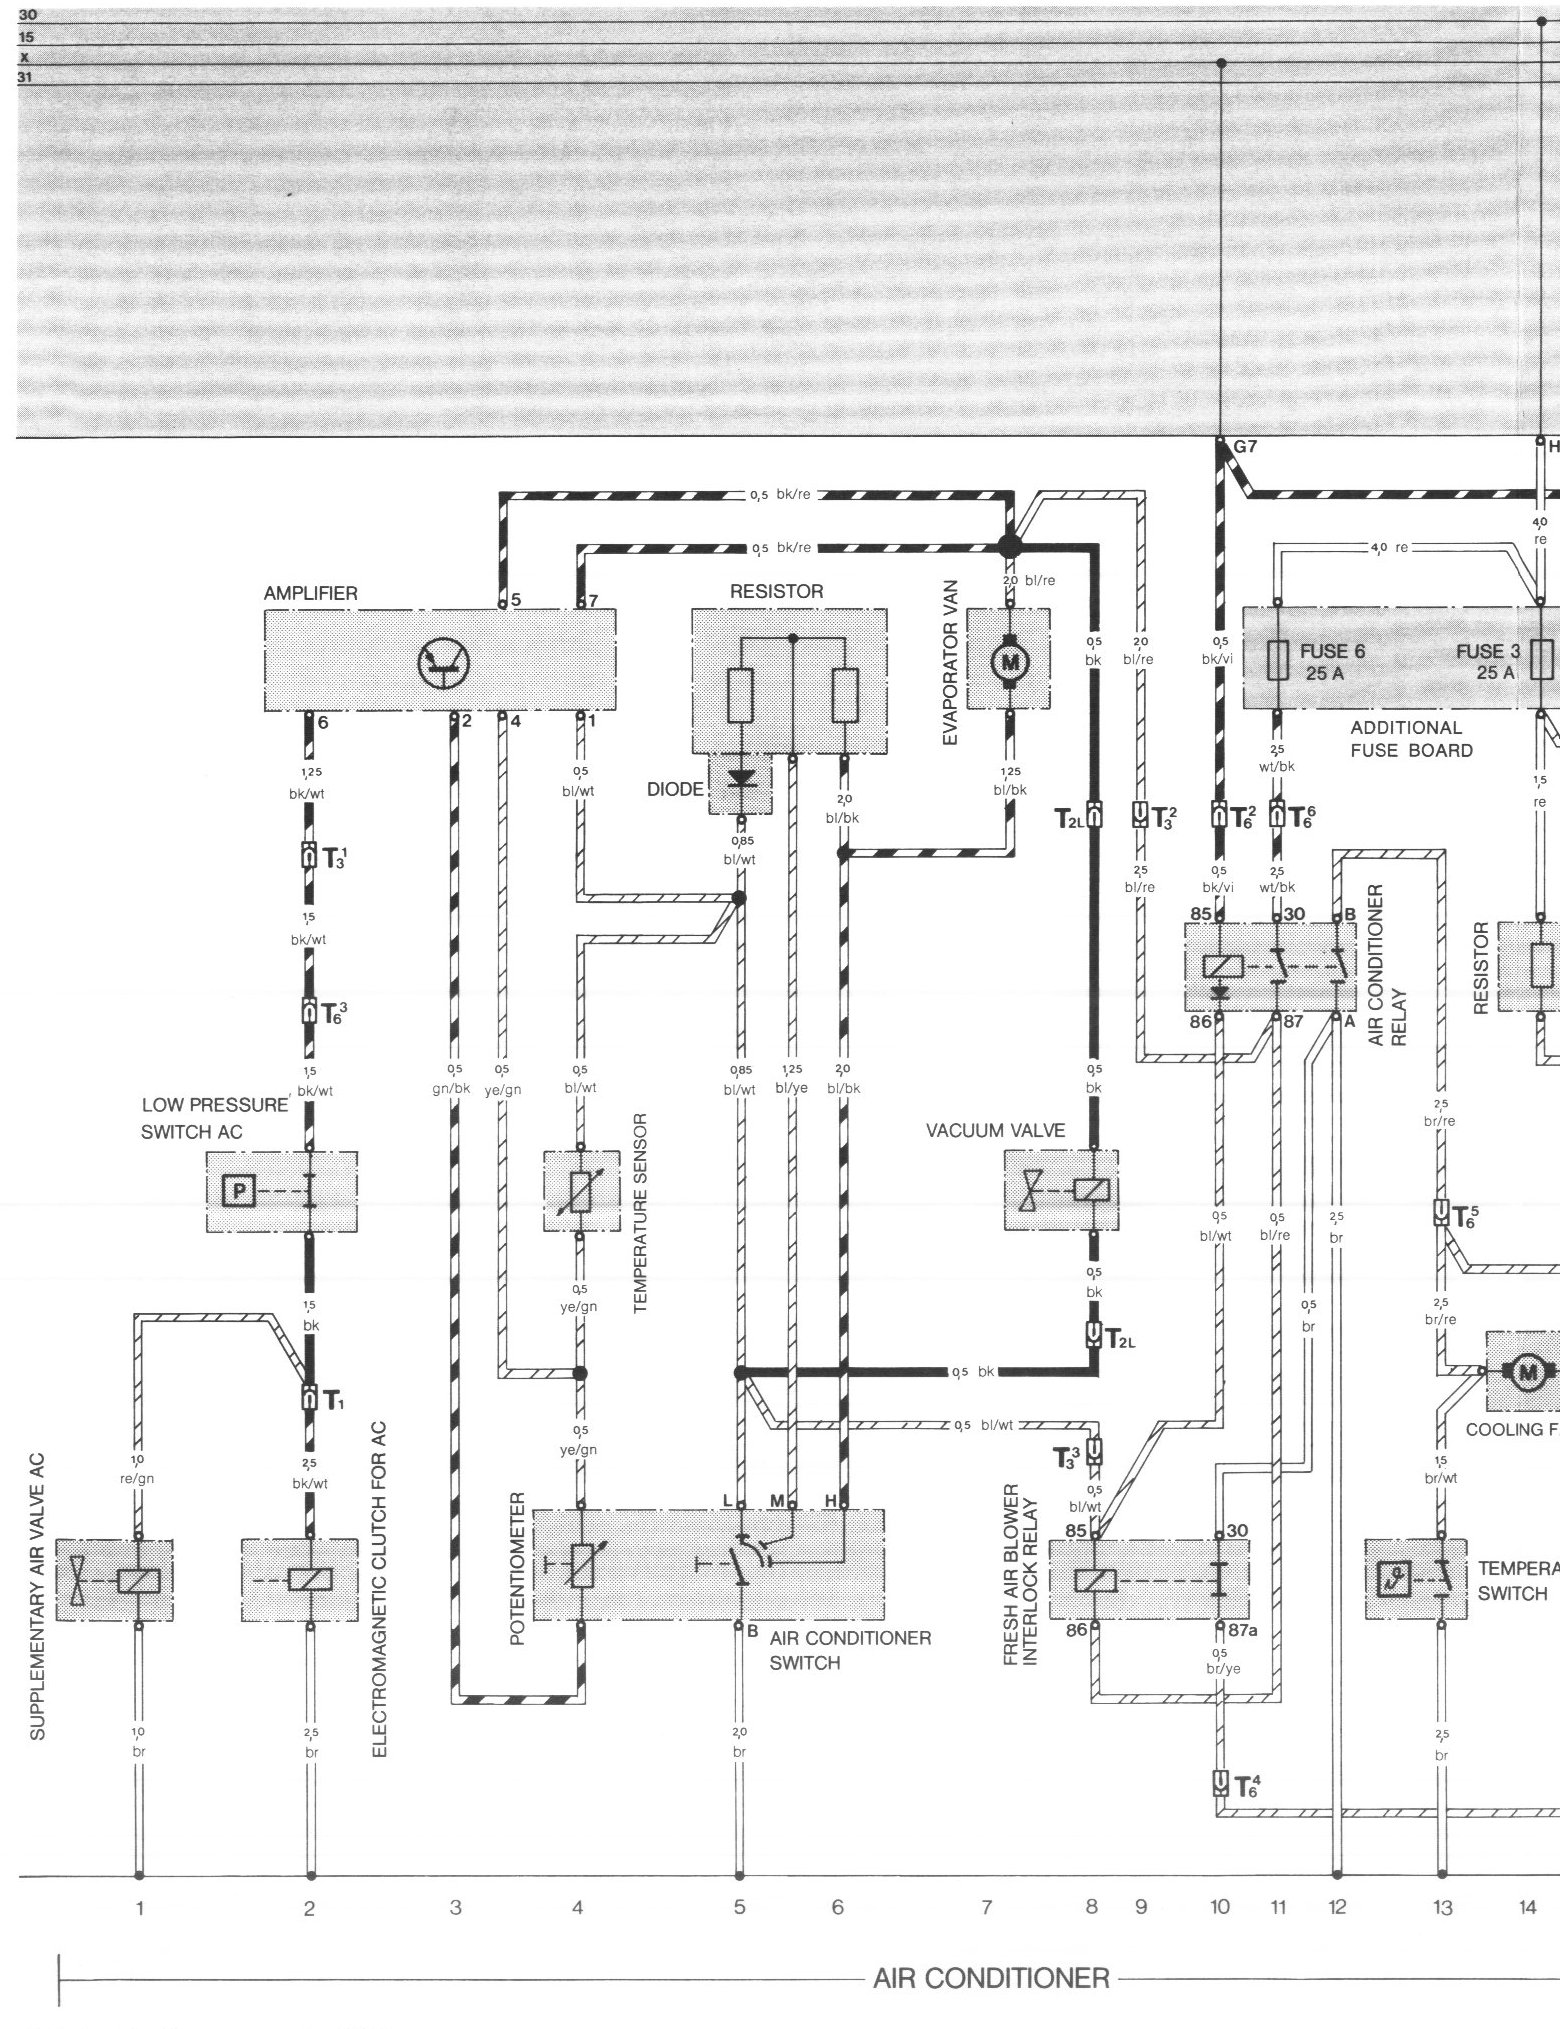 944_84_AC_1 pelican parts porsche 924 944 electrical diagrams porsche 914 fuse box diagram at soozxer.org